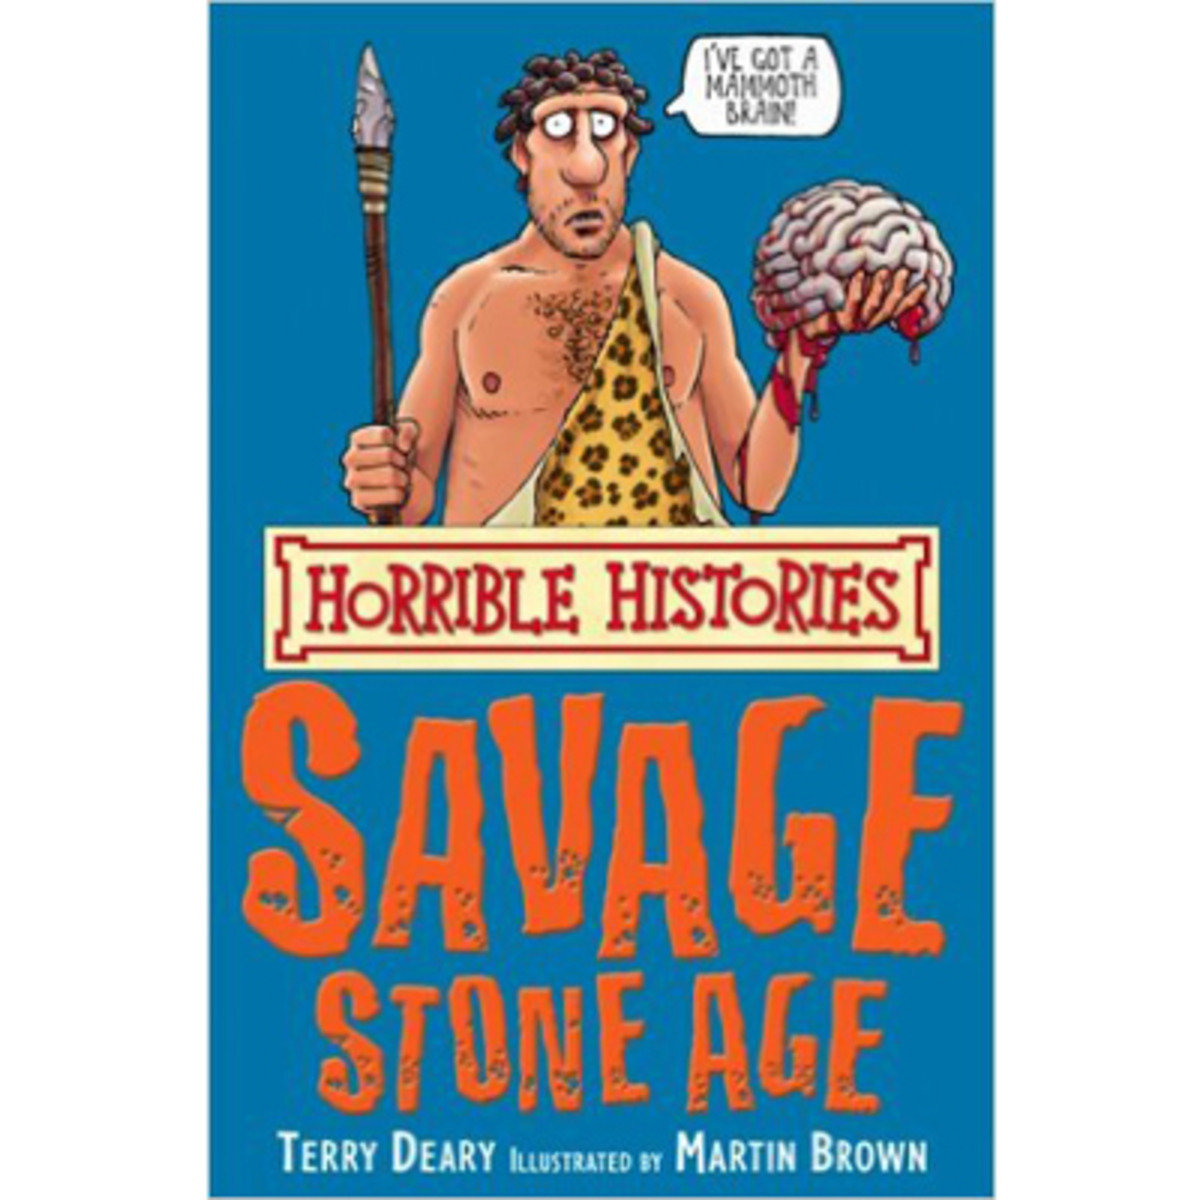 HORRIBLE HISTORIES: THE SAVAGE STONE AGE 9781407104287